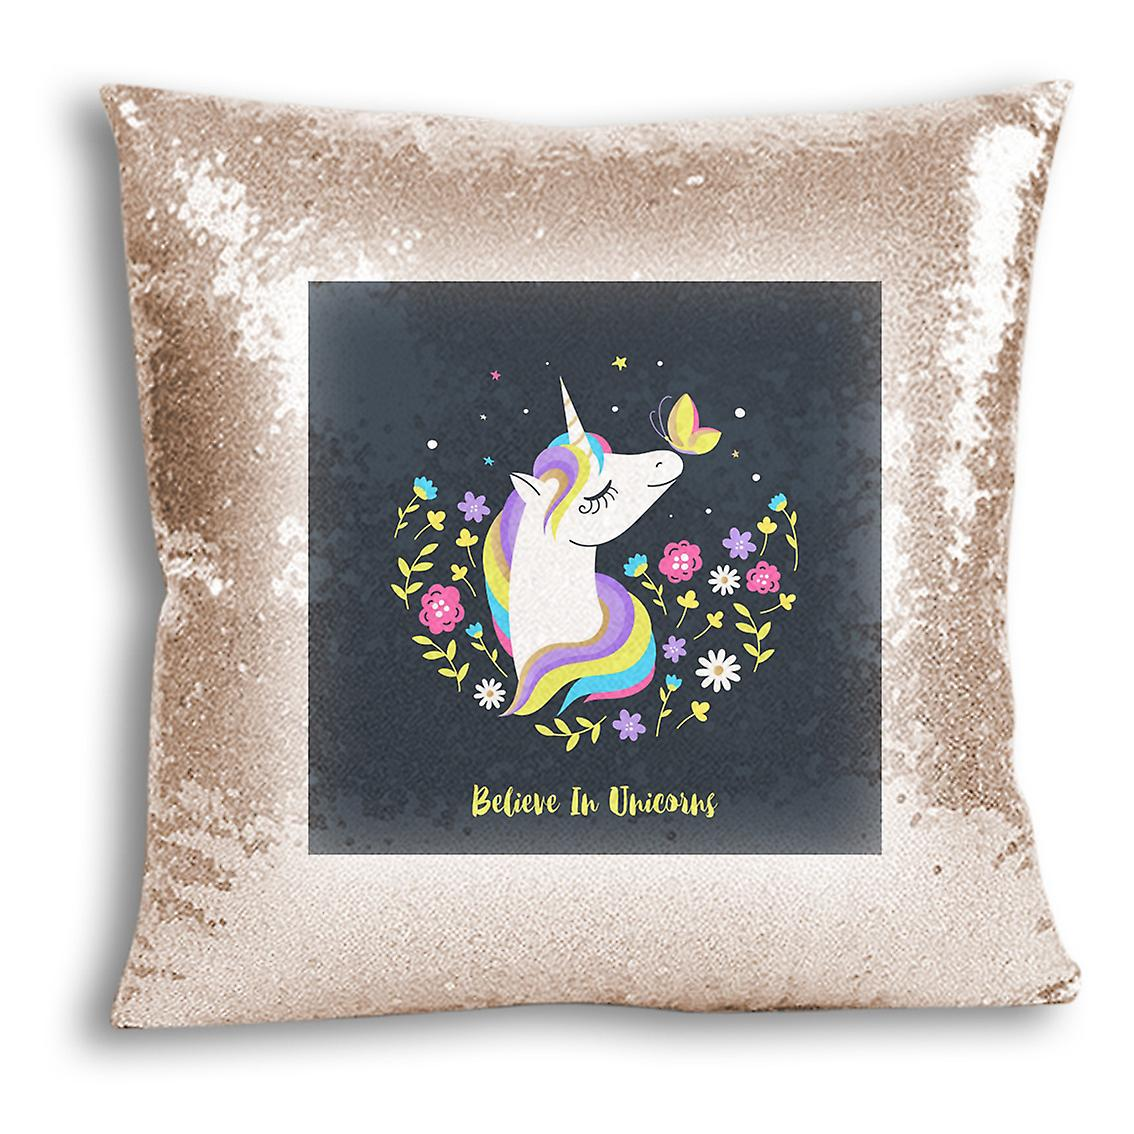 I Home Cover Printed With Champagne For Decor 14 tronixsUnicorn Design CushionPillow Sequin Inserted 1lcTKJ3F